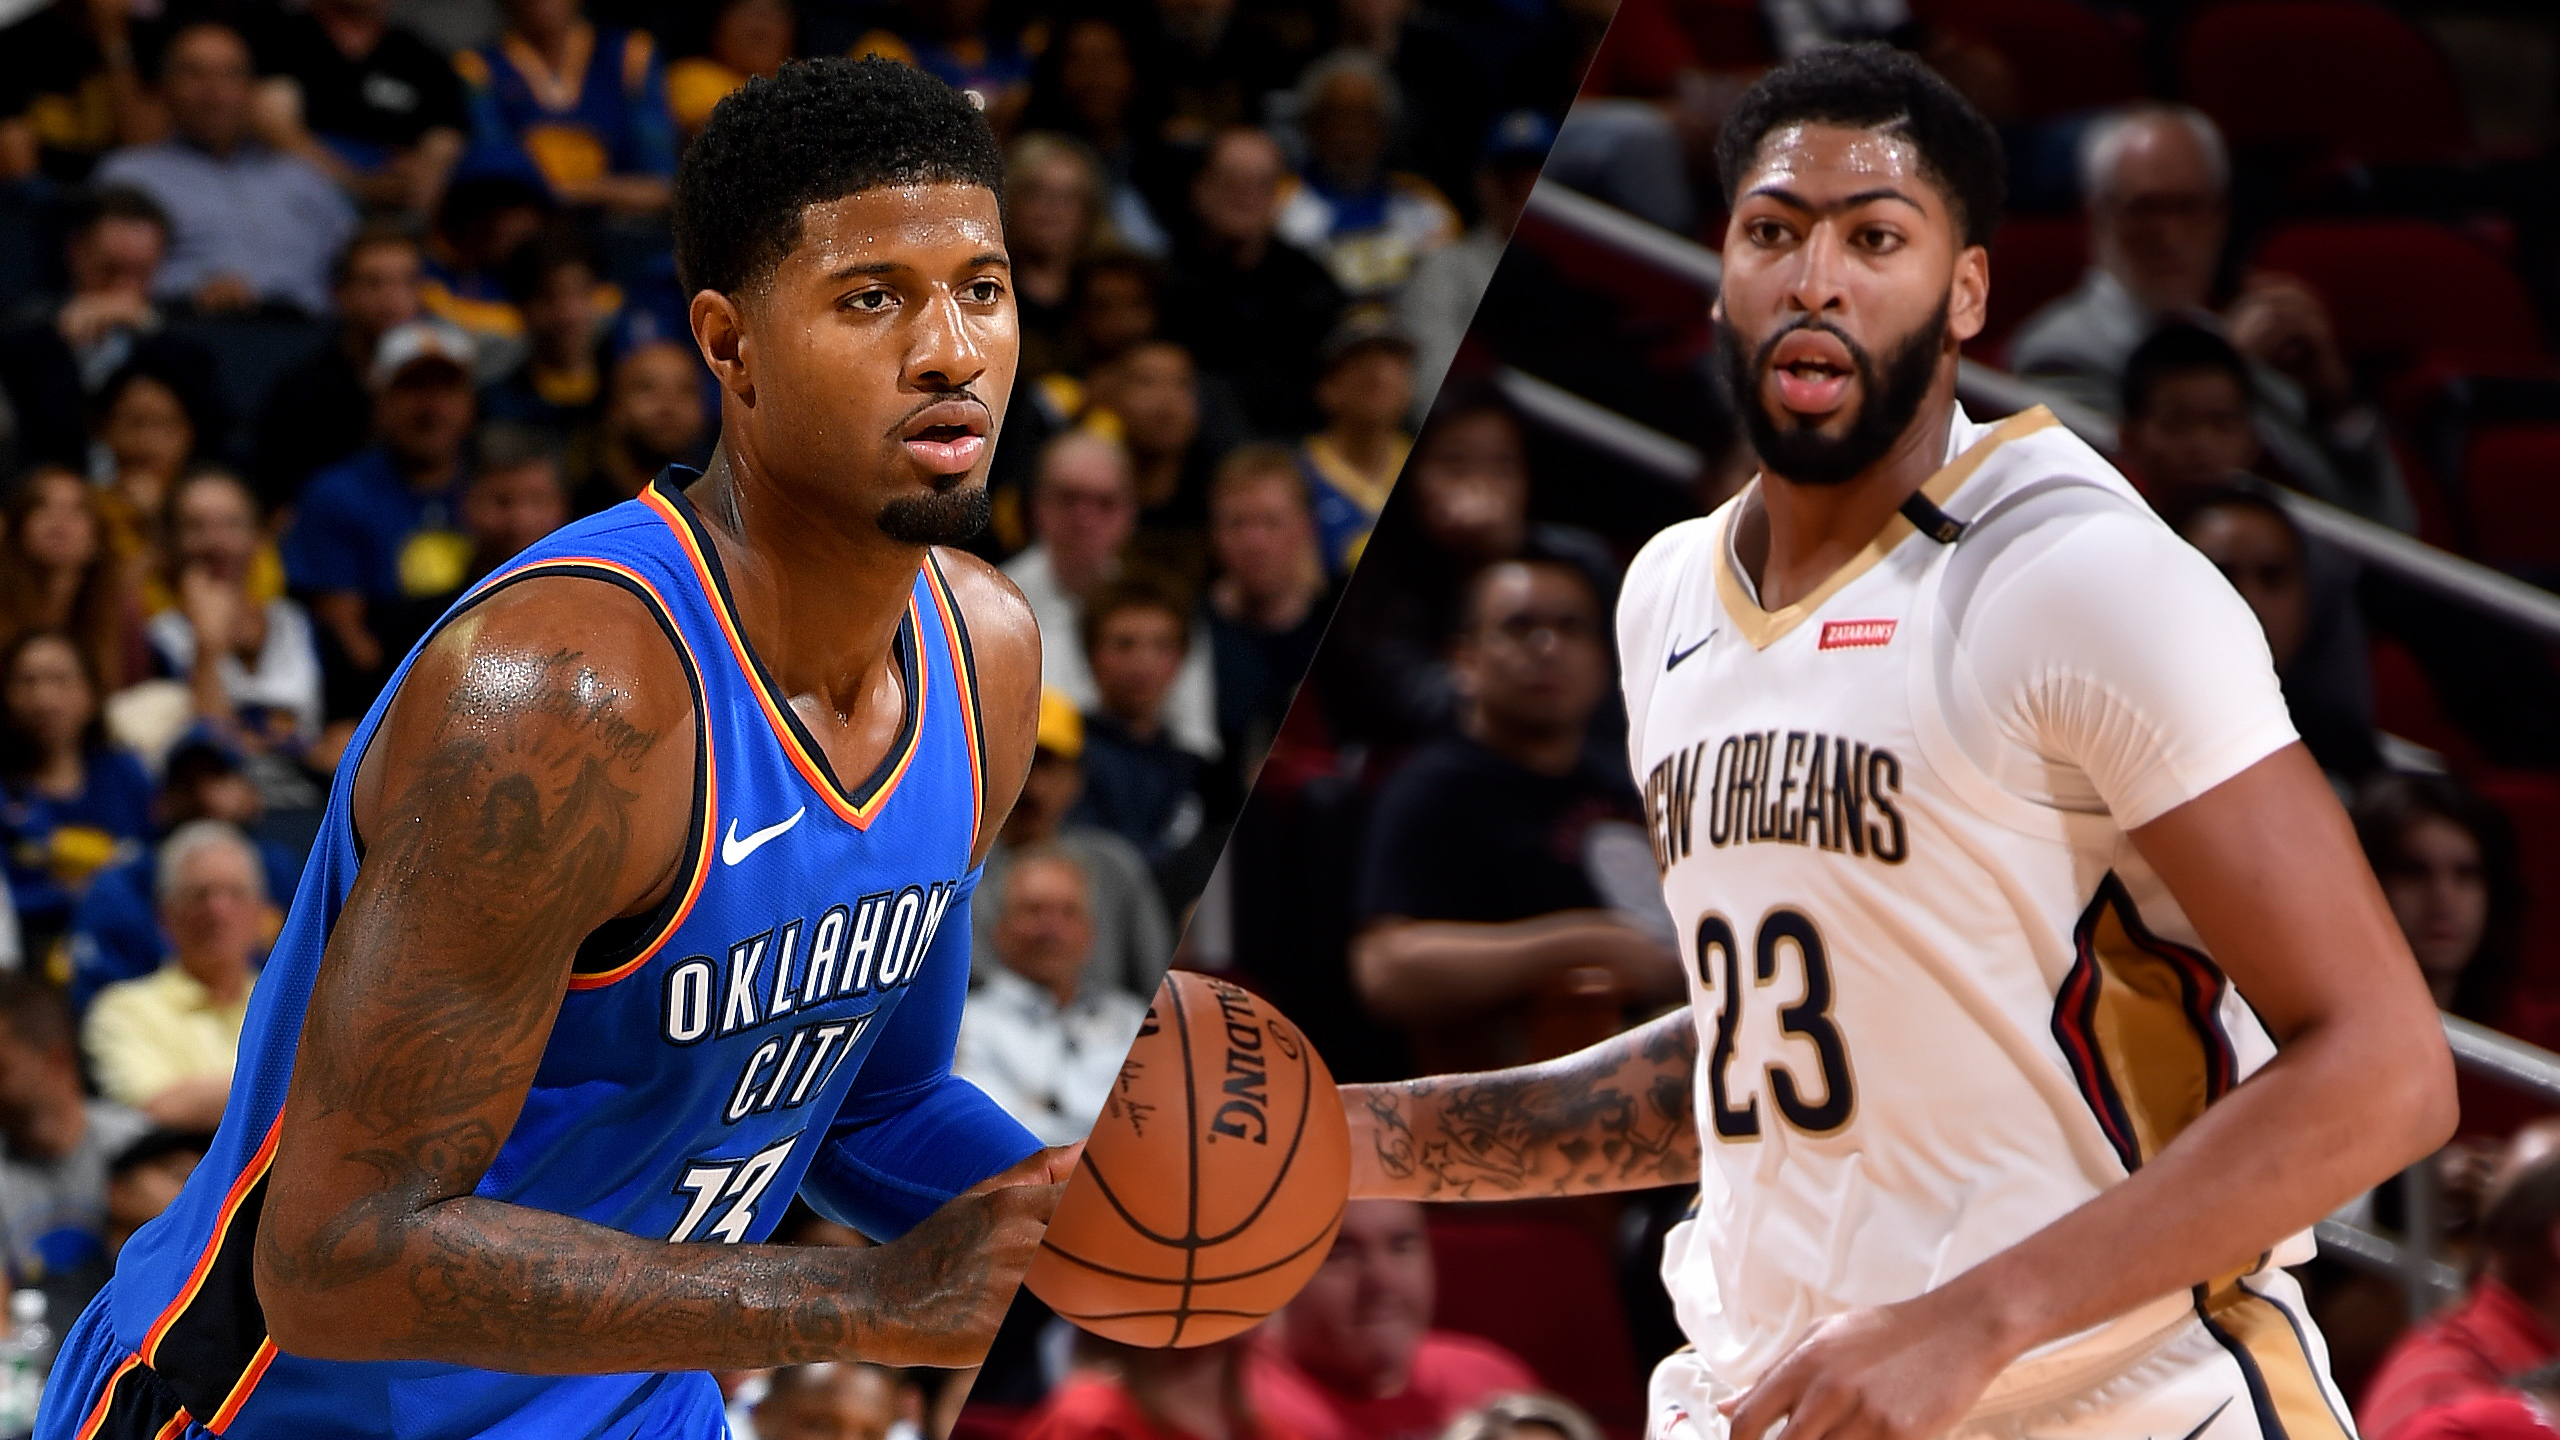 Oklahoma City Thunder vs. New Orleans Pelicans (re-air)